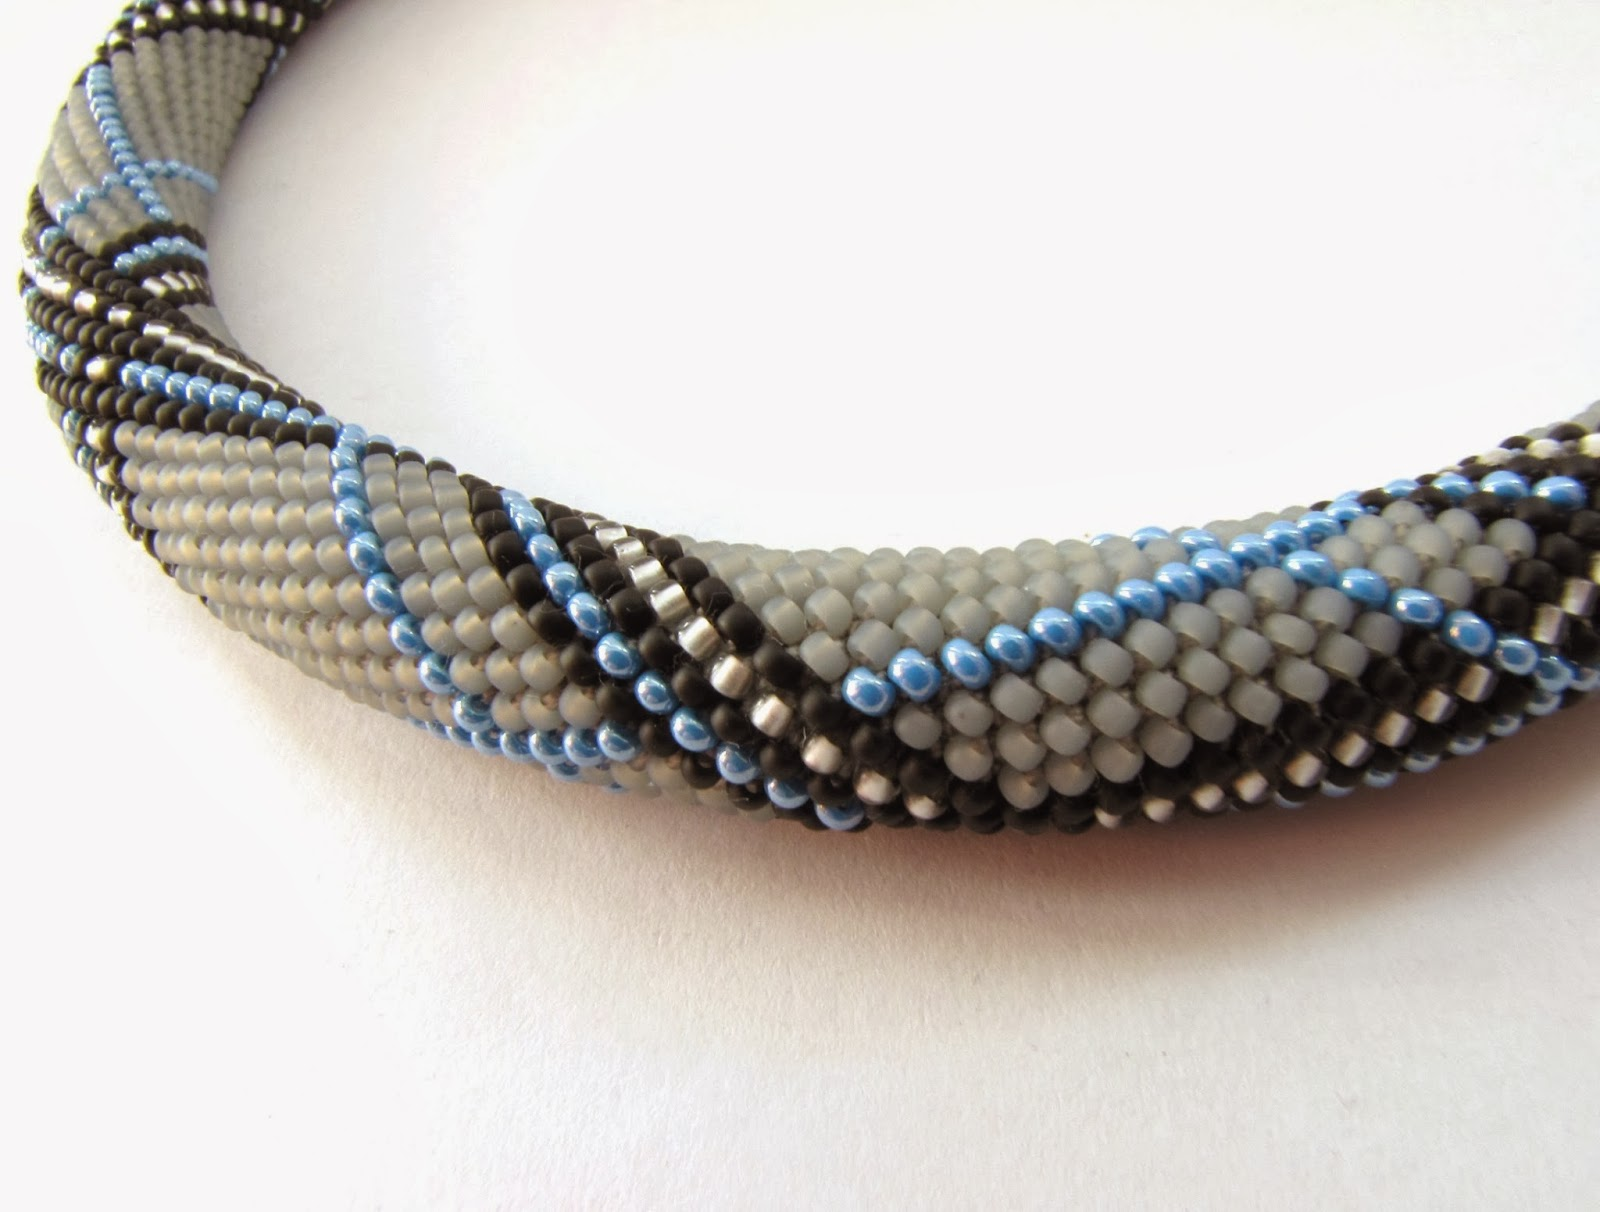 Bead Crochet : Modern Handmade jewelry: One more bead crochet necklace